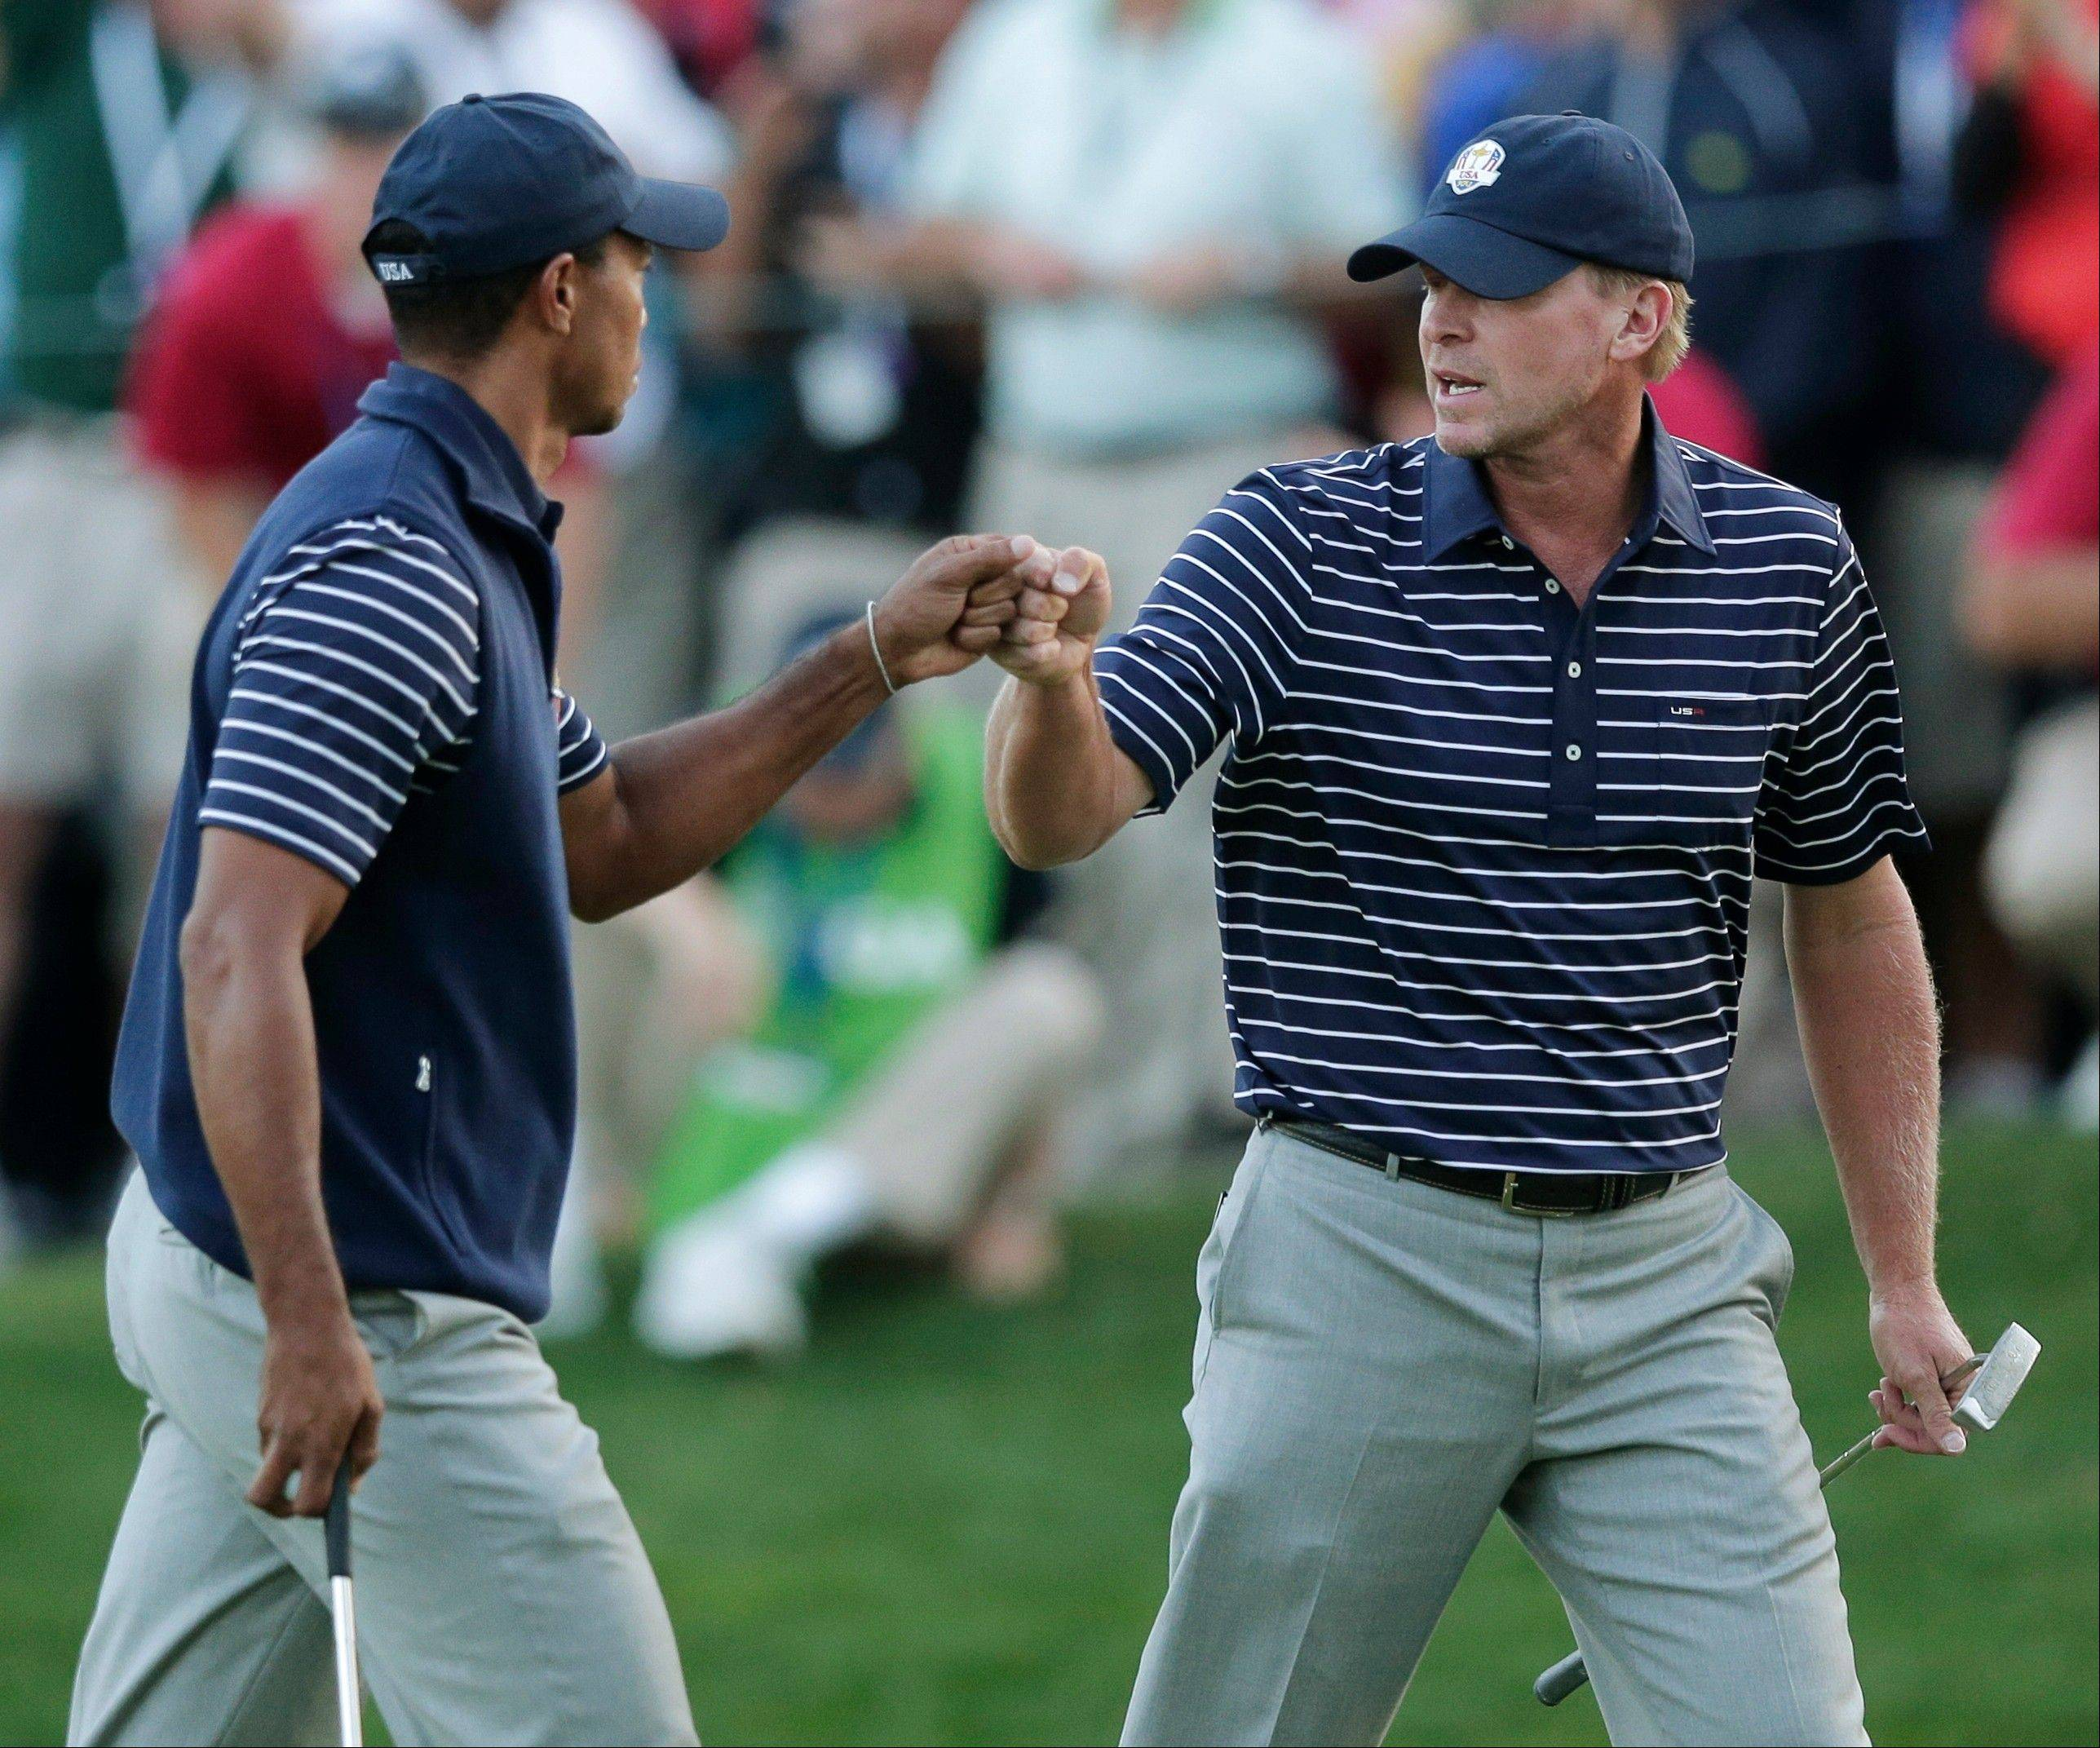 USA's Tiger Woods and Steve Stricker celebrate after winning the 16th hole during their fourball match Saturday at the Ryder Cup Saturday. Despite a rally, they lost their third straight match at Medinah.